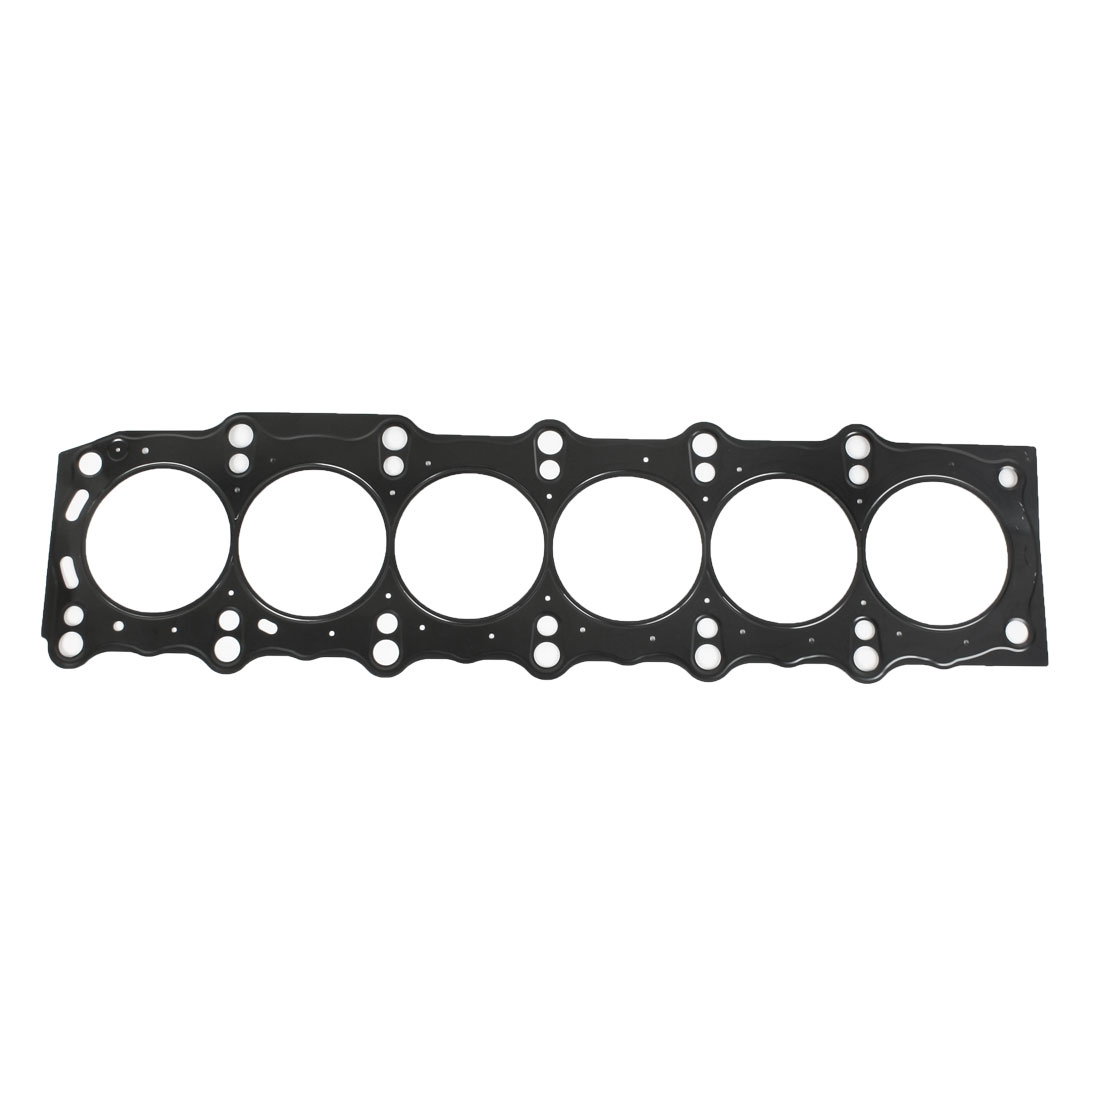 2JZ-GE Engine Cylinder Head Gasket Seal for Lexus GS IS I